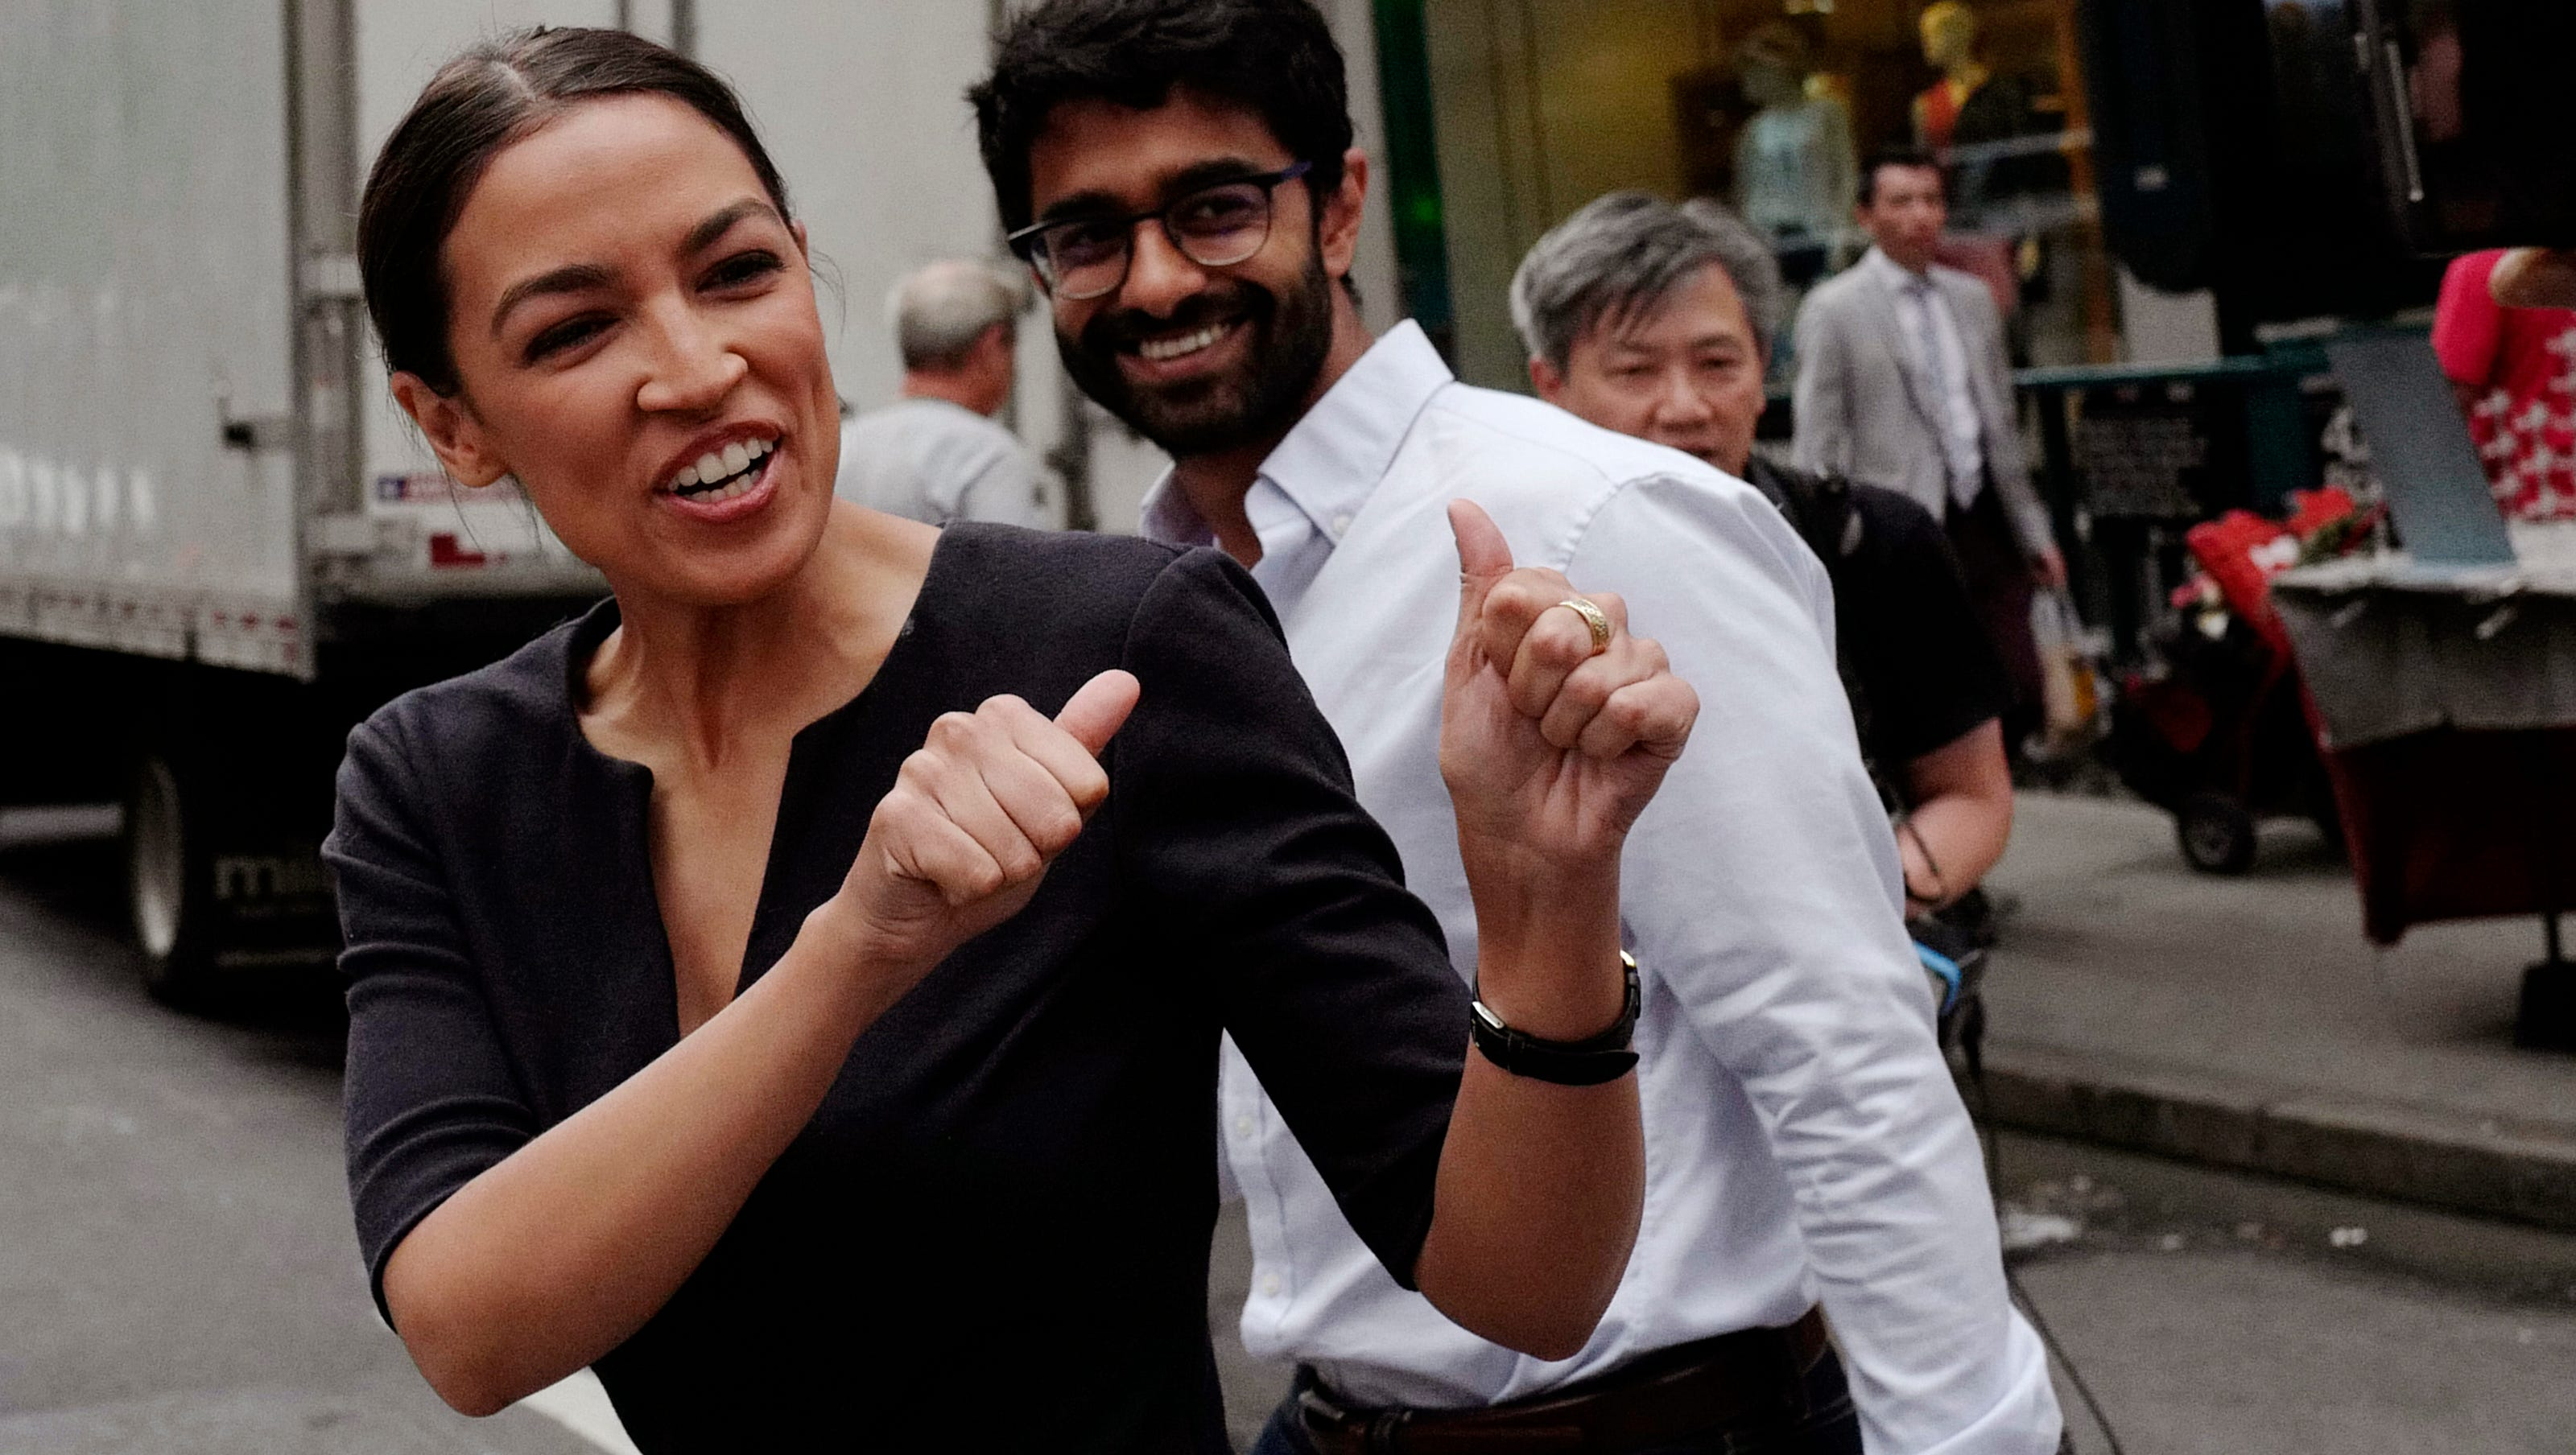 https://www.usatoday.com/story/opinion/voices/2018/08/28/democrat-family-escaped-socialism-ocasio-cortez-worries-me-column/1106307002/